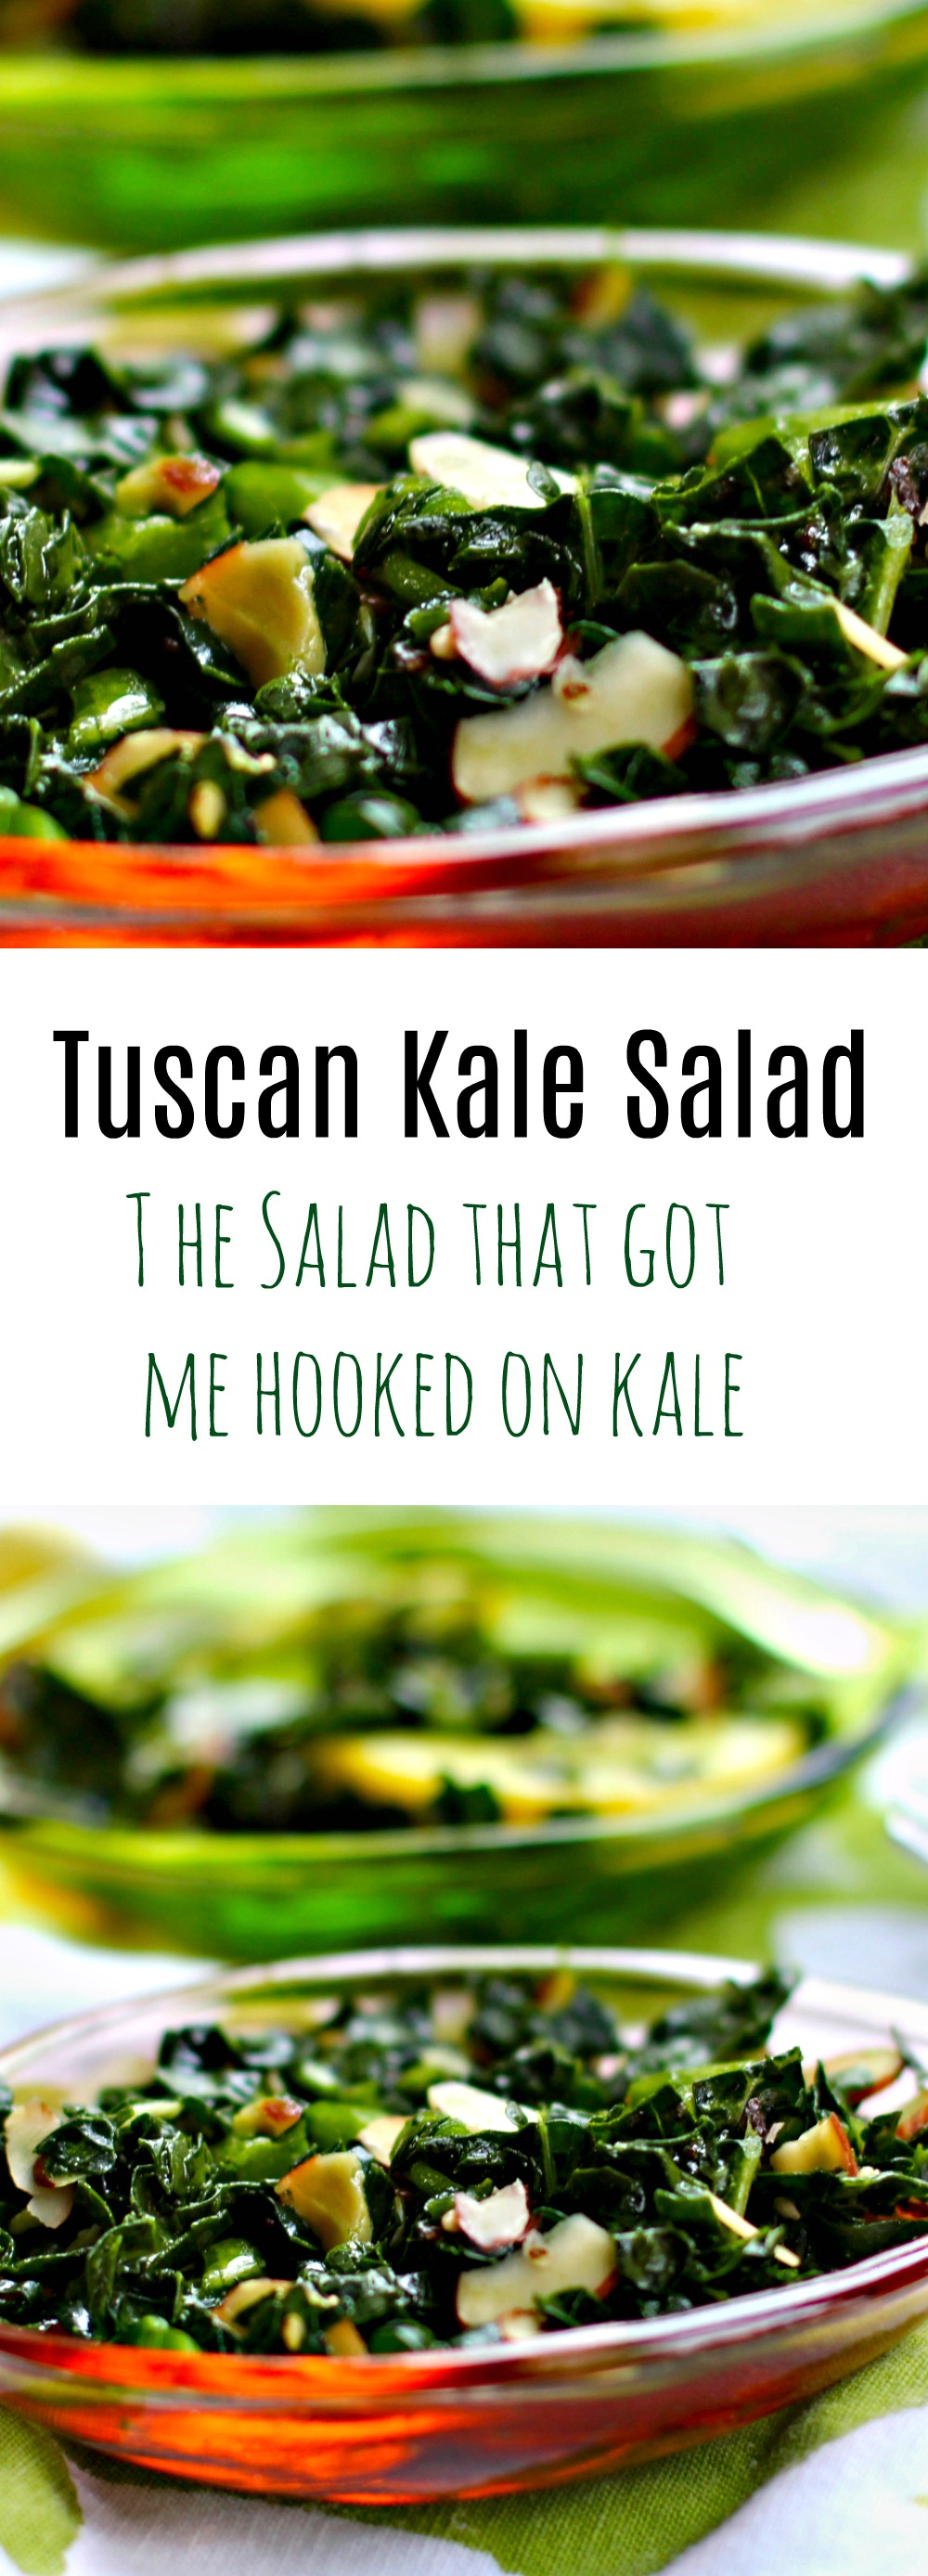 Chopped Kale Salad Tuscan Style from Spinach TIger